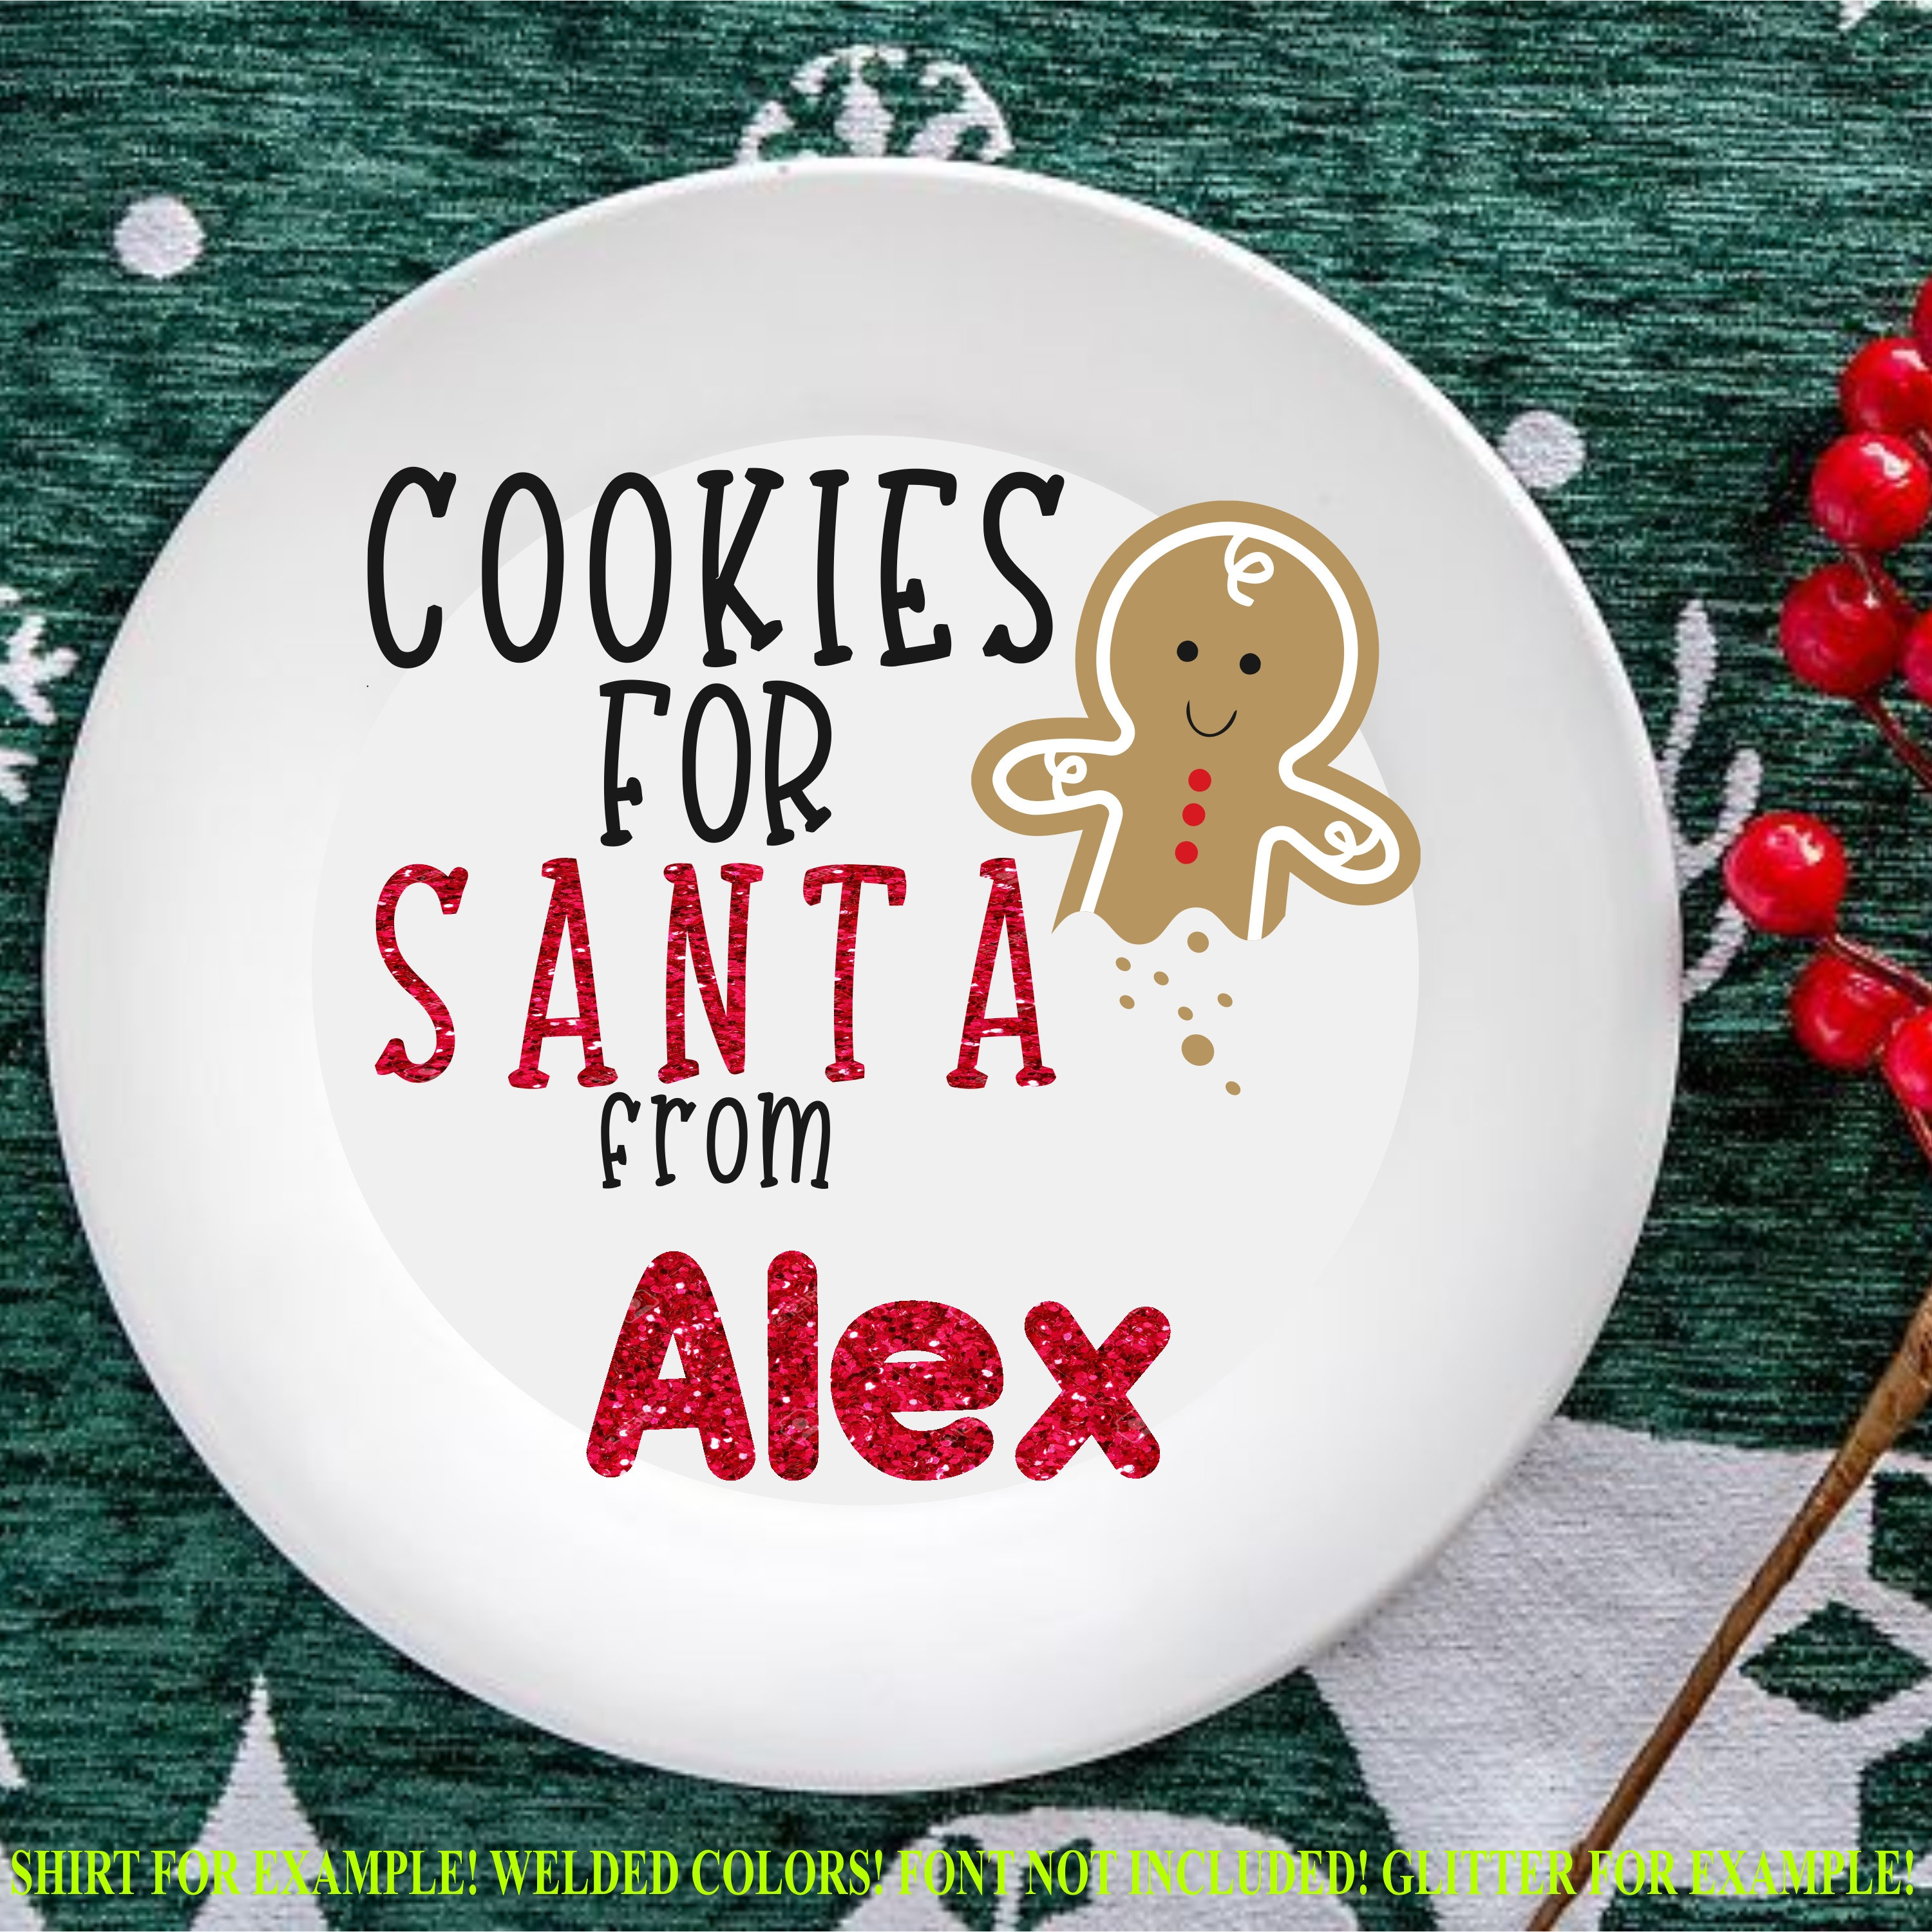 Cookies-for-santa-plate-svgchristmas-svgcookies-svg-santa-plate-svgchristmas-svg-designchristmas-cut-filesvg-for-cricutsvg-for-mobile-5fa095d7